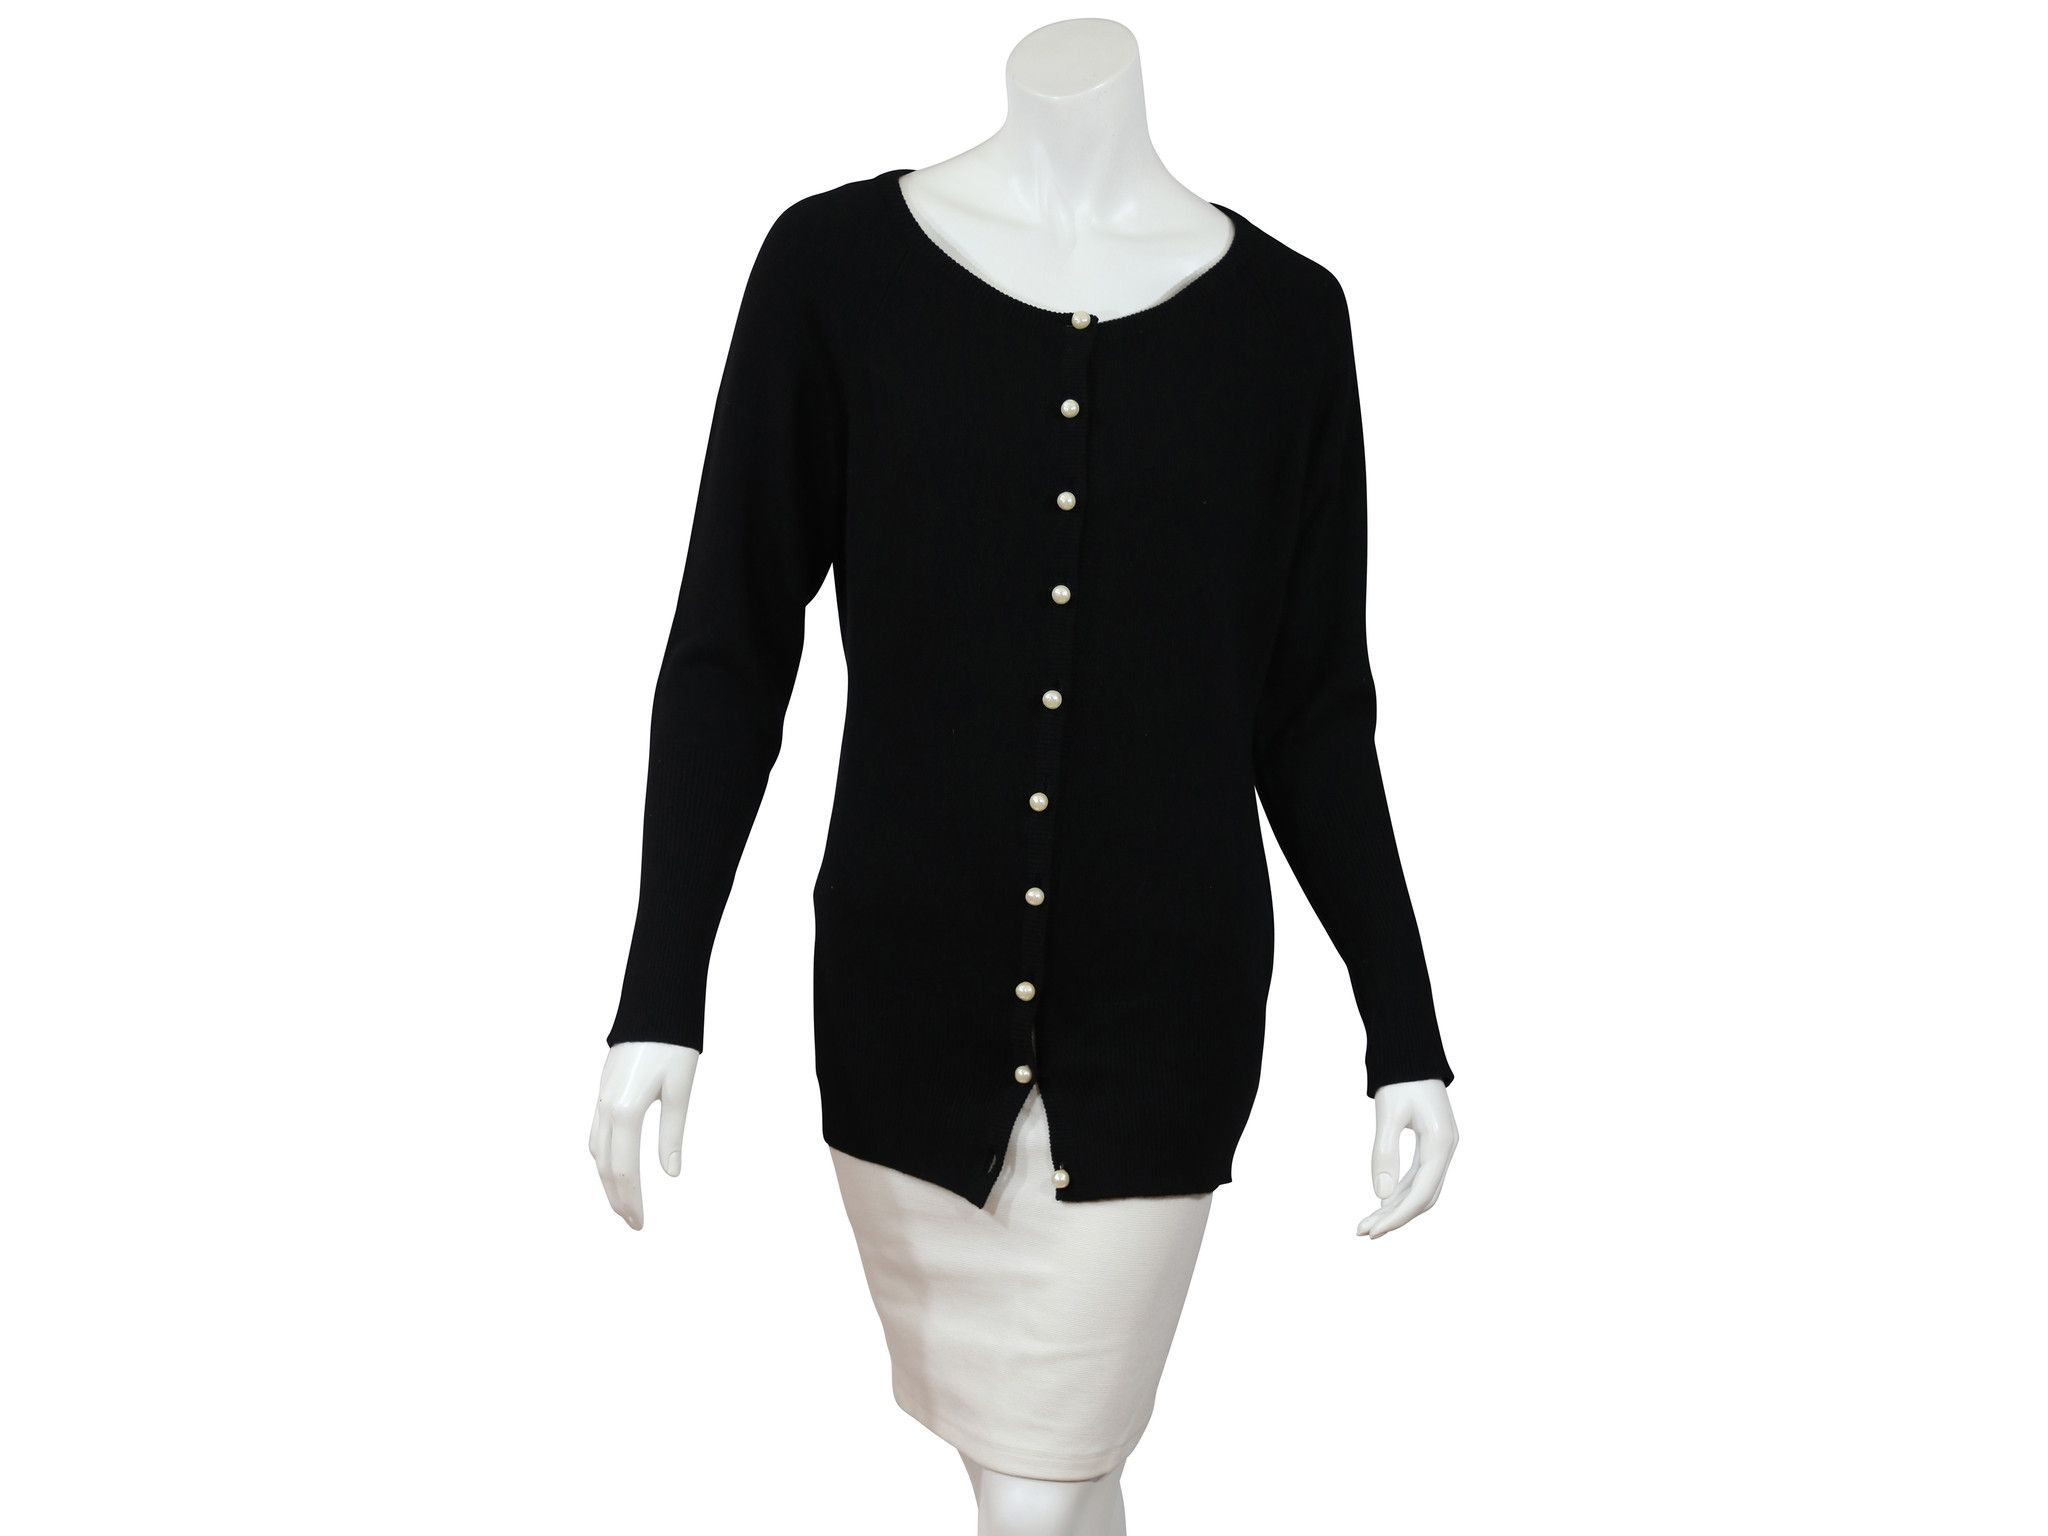 Chanel Black Cashmere Cardigan with Pearl Buttons | Cardigans For ...